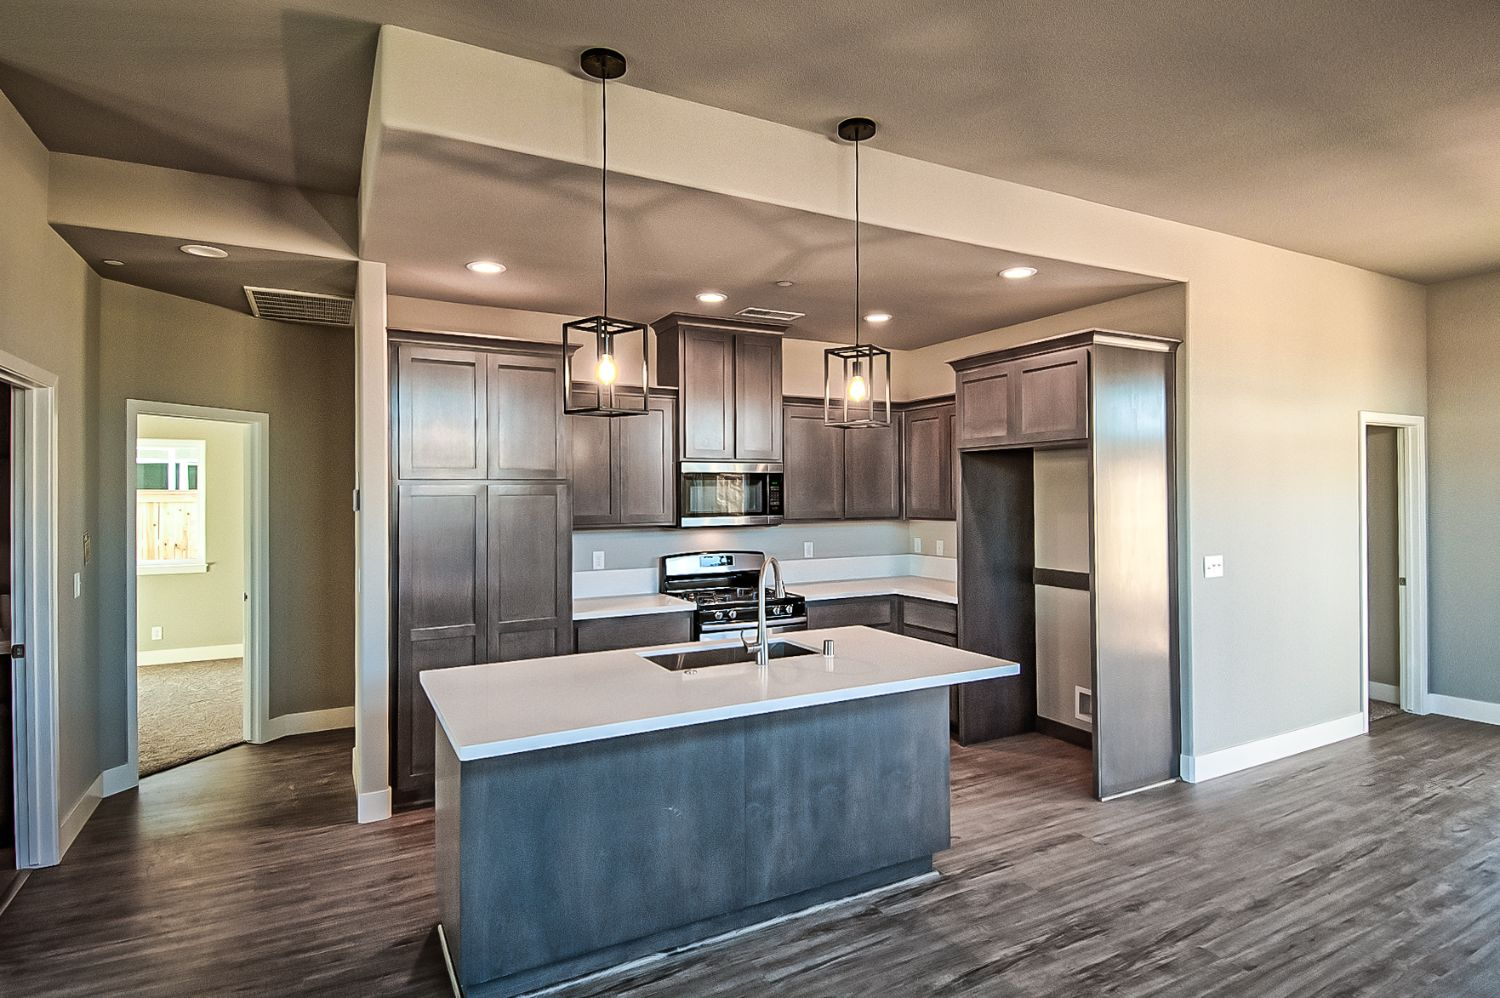 housing development Chico ca new homes chico ca brand new house butte county trinity park homes legacy estates houses kite group